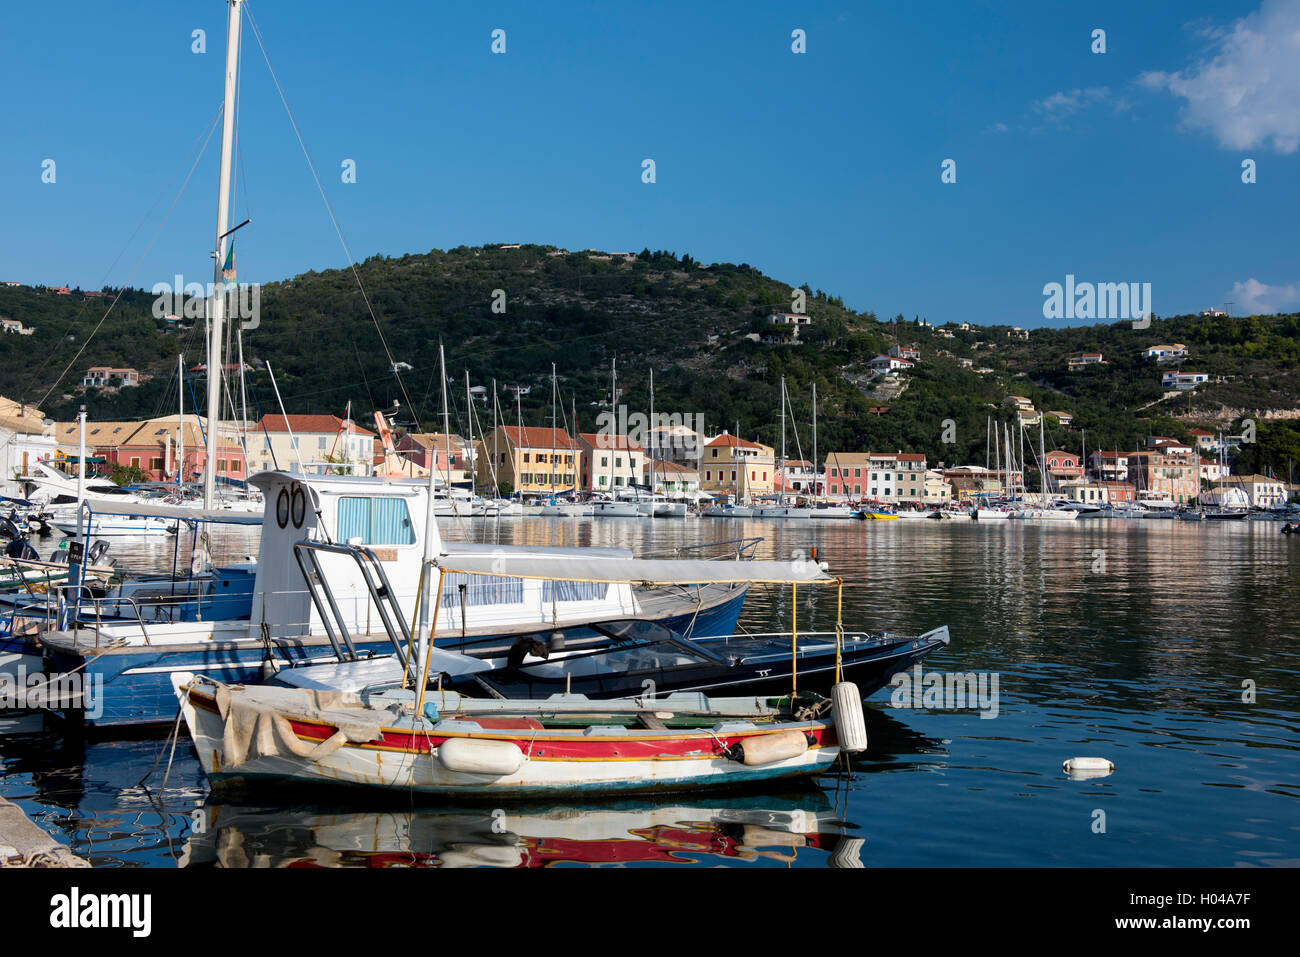 Old fishing boats and modern yachts in the Gaios harbour on Paxos, The Ionian Islands, The Greek Islands, Greece, - Stock Image